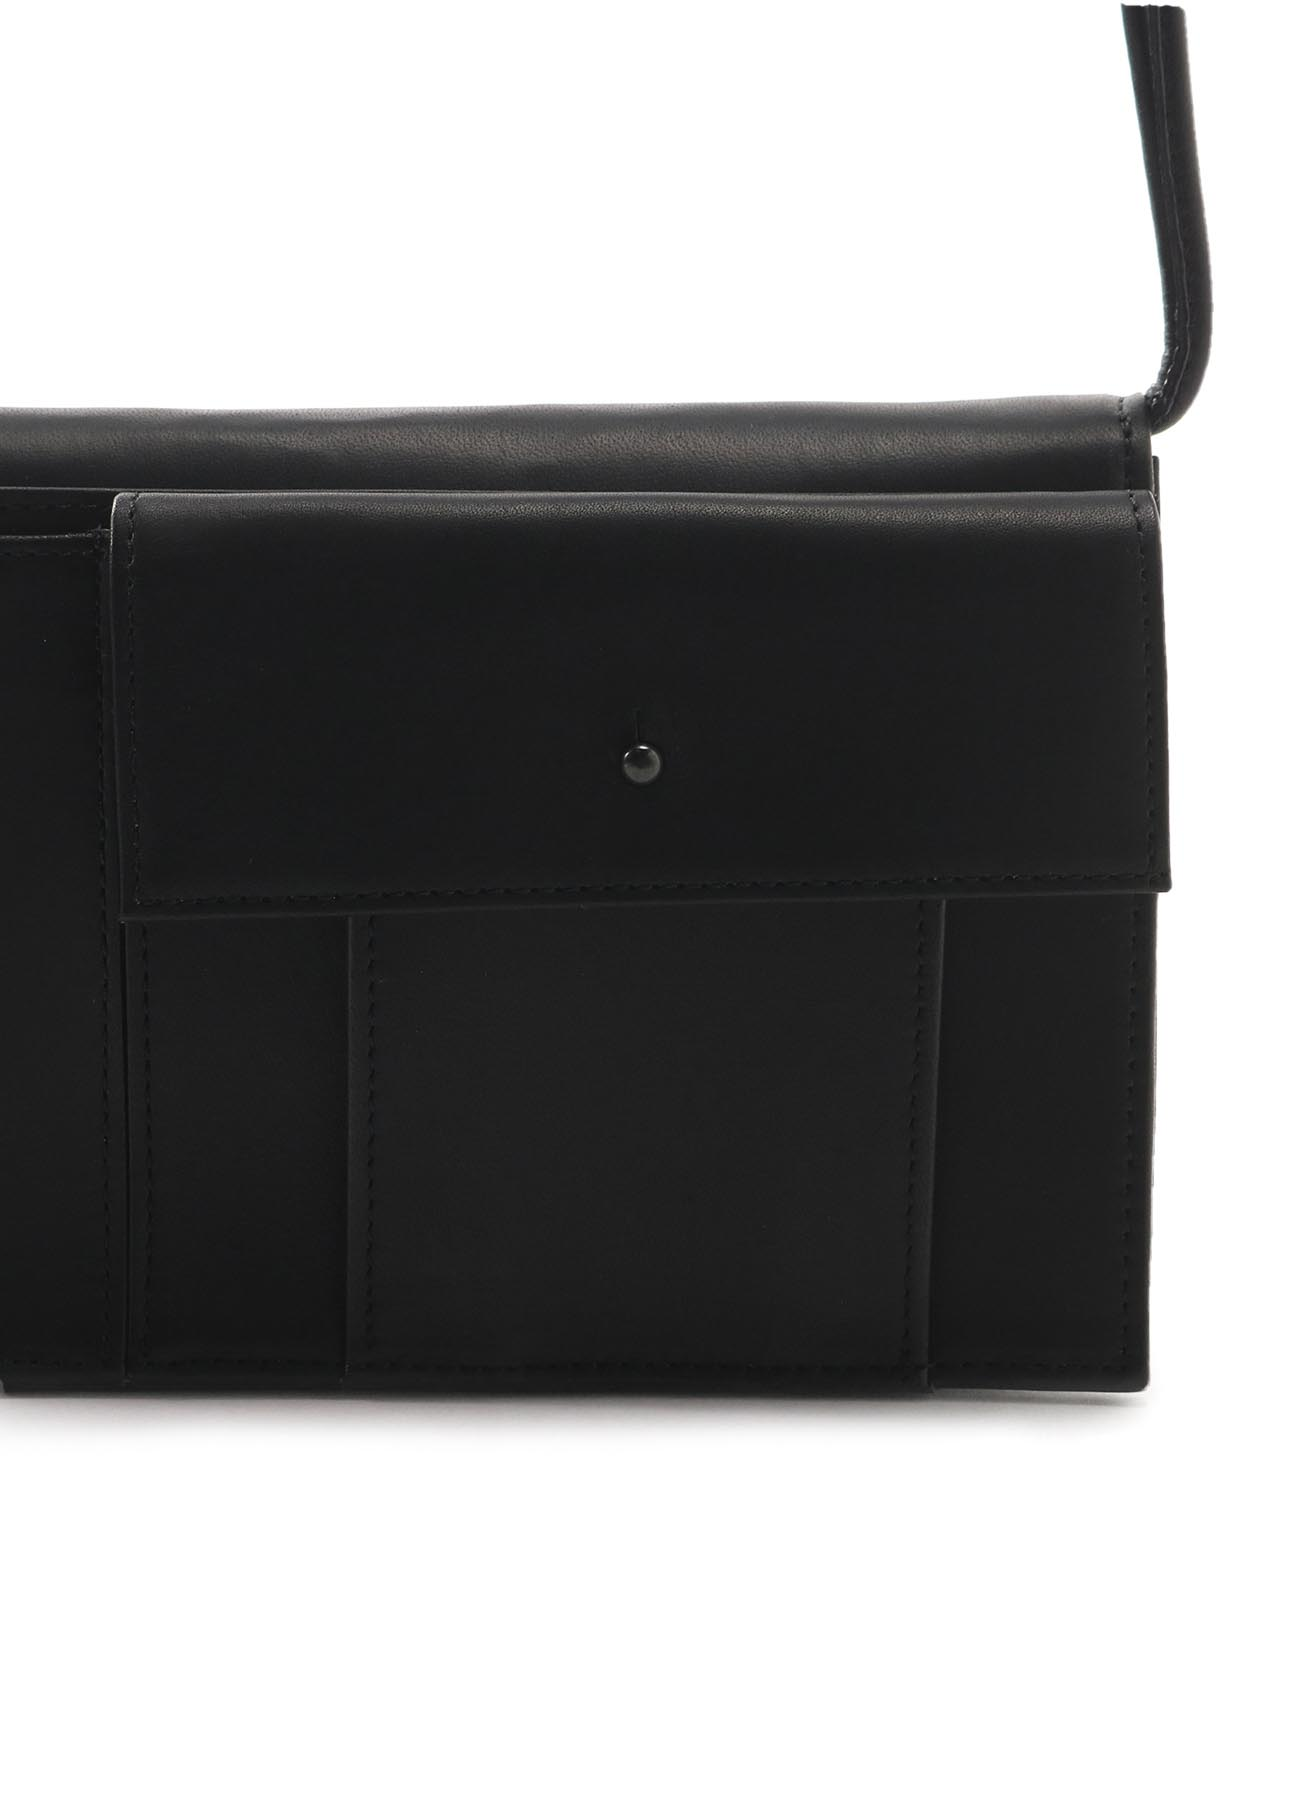 SMOOTH LEATHER FLAP POCHETTE